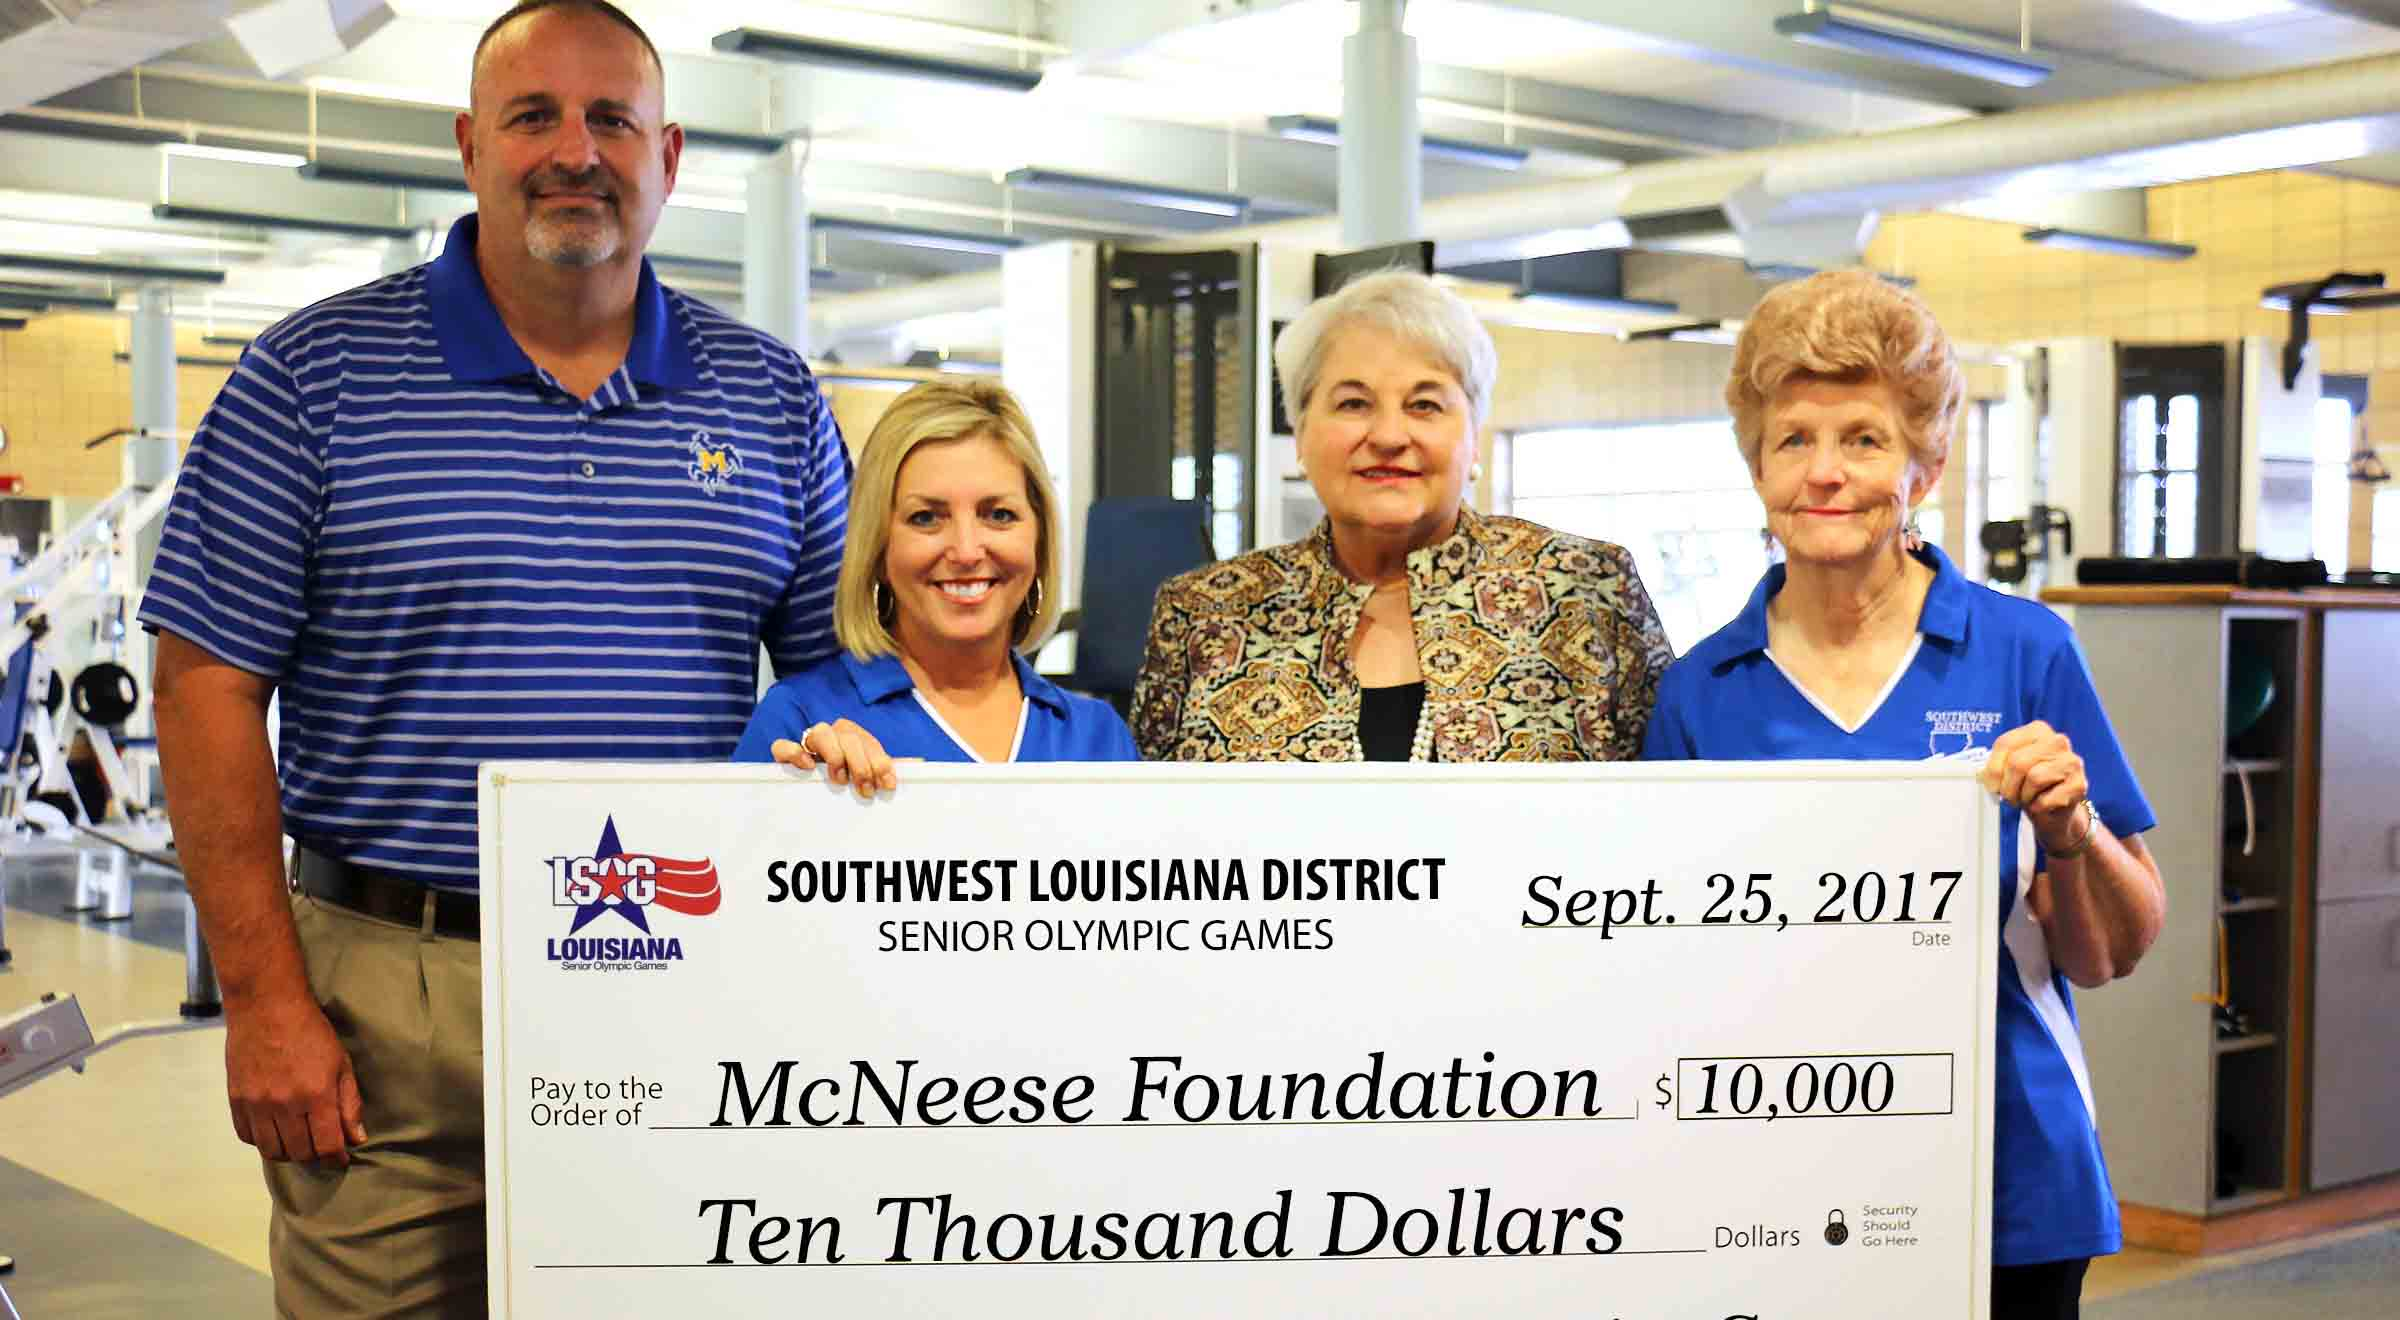 Senior Olympic Games members present a check to McNeese members in the Rec Center weight room.